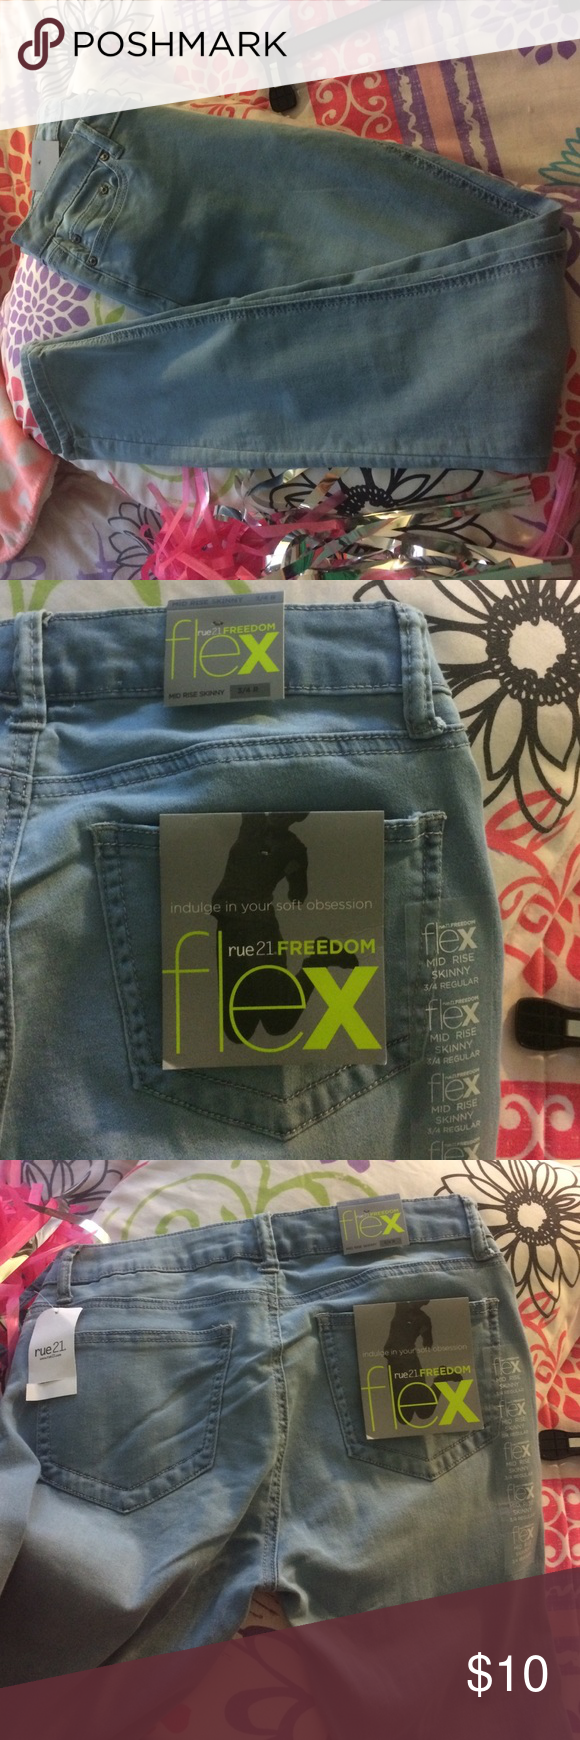 Rue 21 Freedom FLEX Jeans Brand new with tags. Size 3/4 Rue 21 Jeans Straight Leg